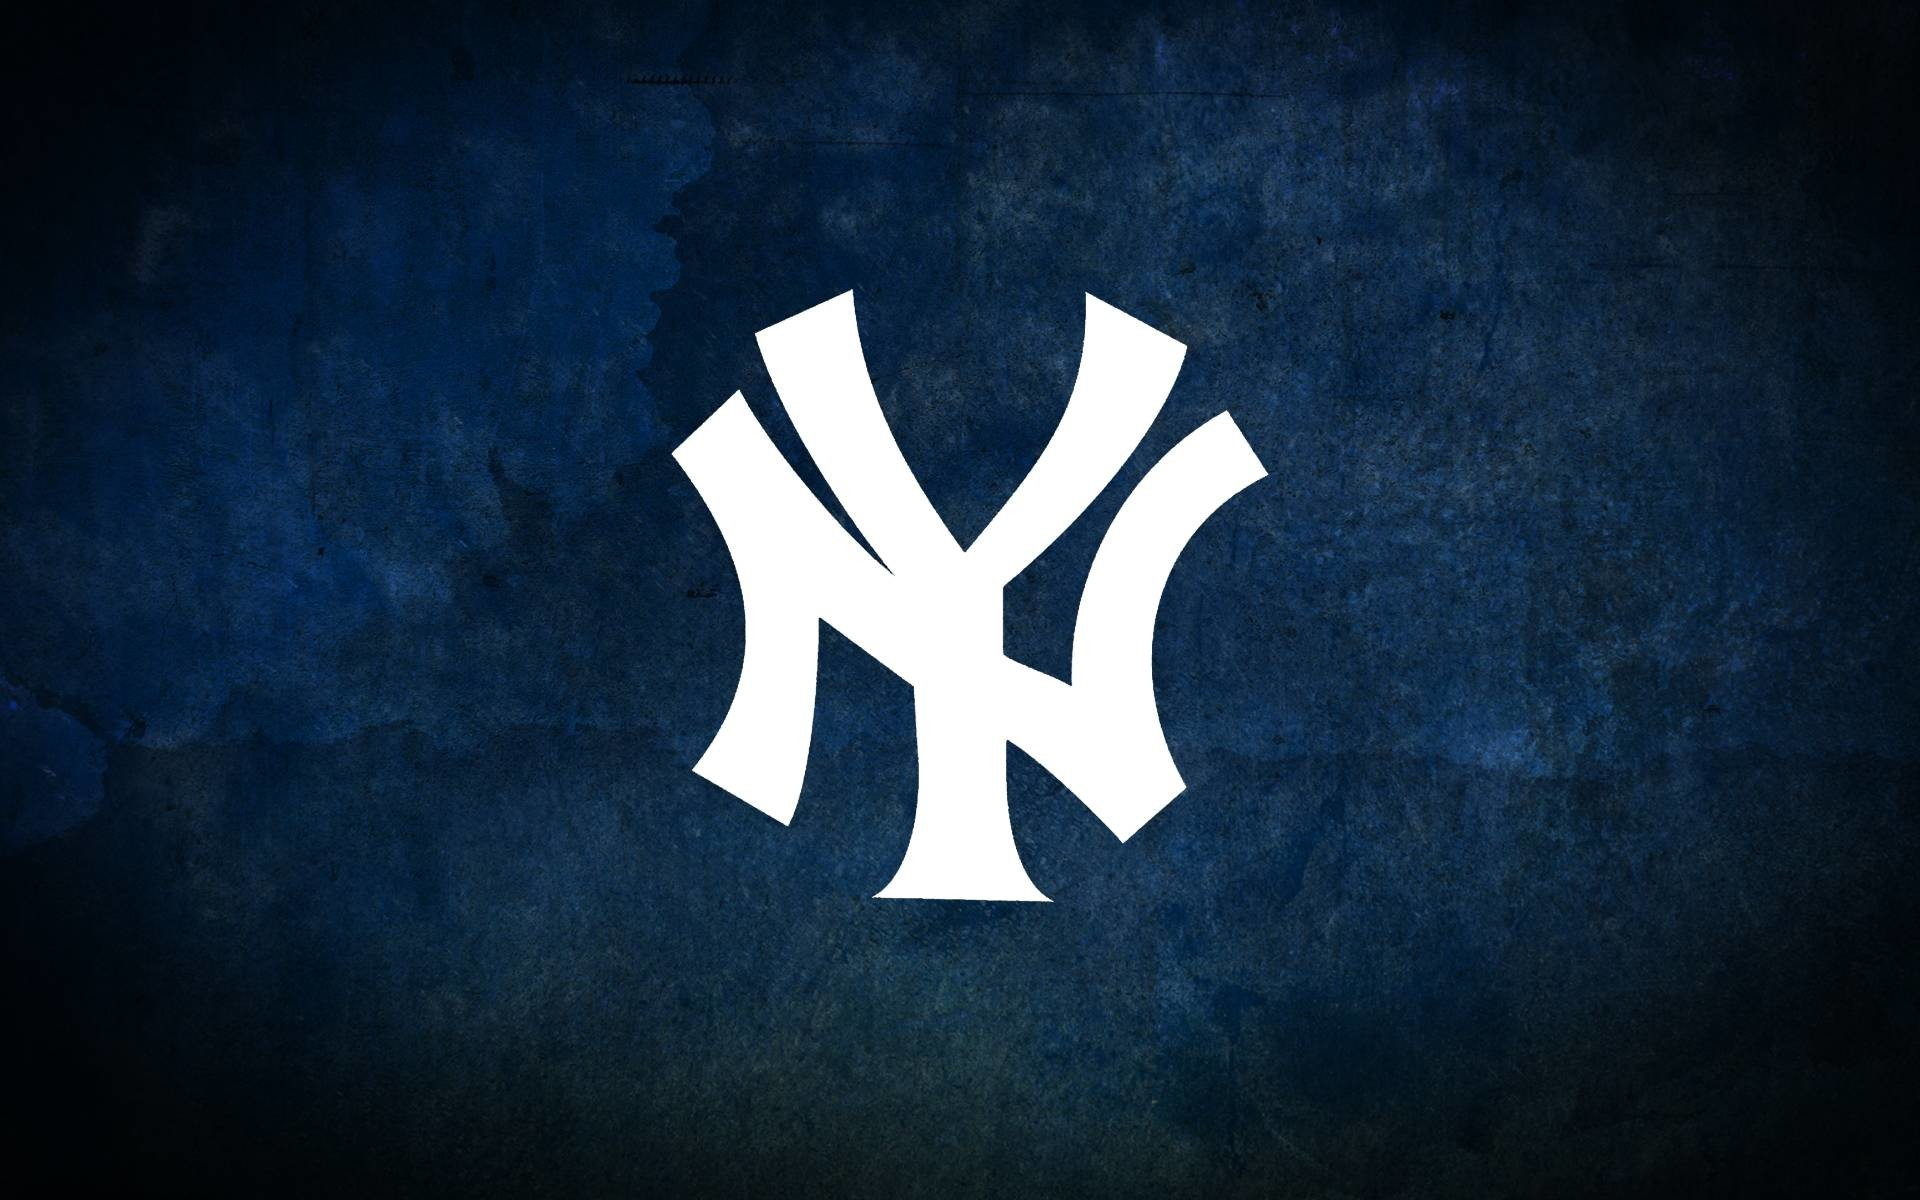 yankees wallpaper iphone 5